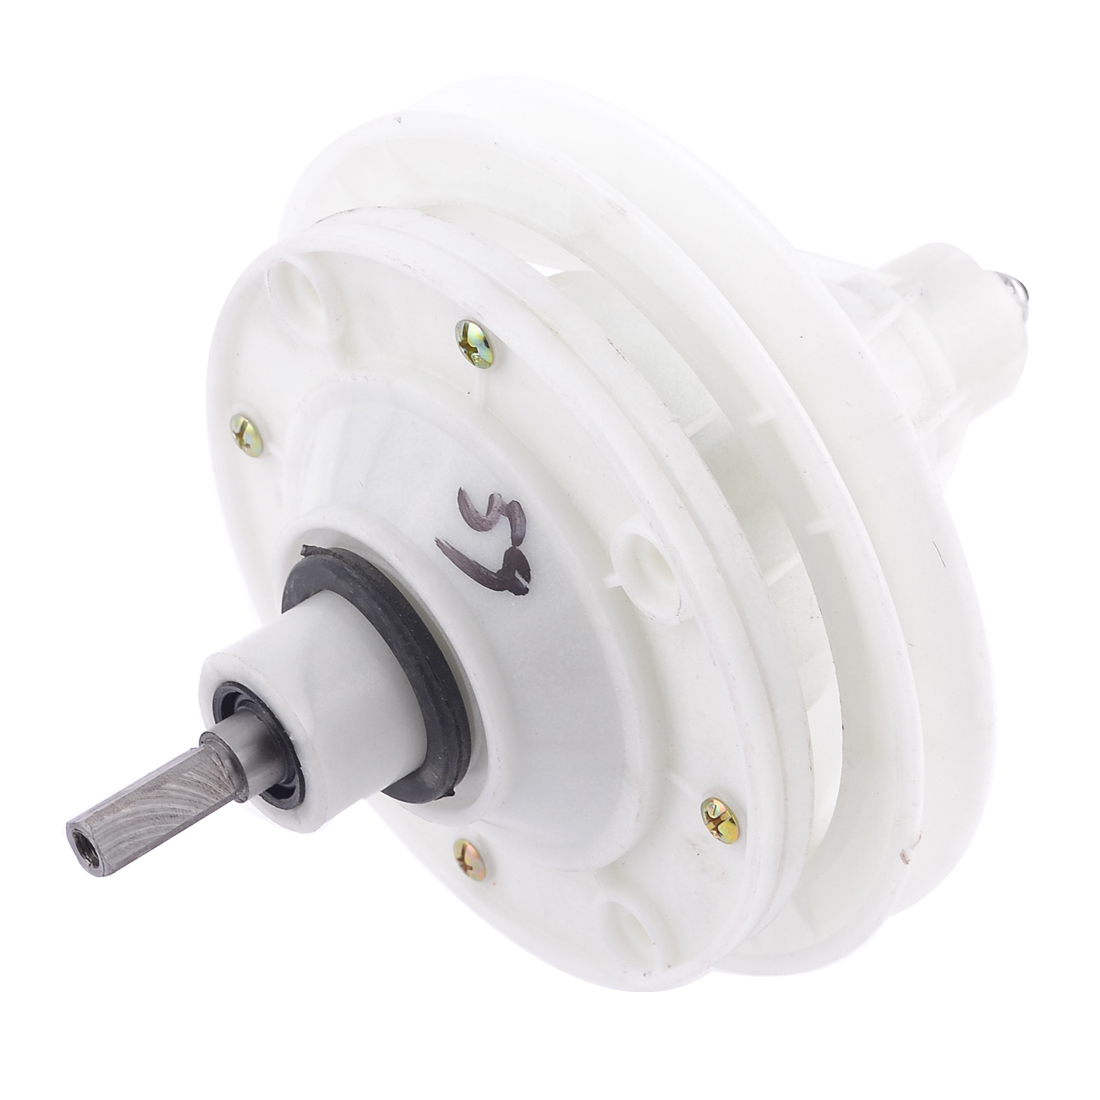 23mm Length Square Shaft Washing Machine Gear Box Reducer White